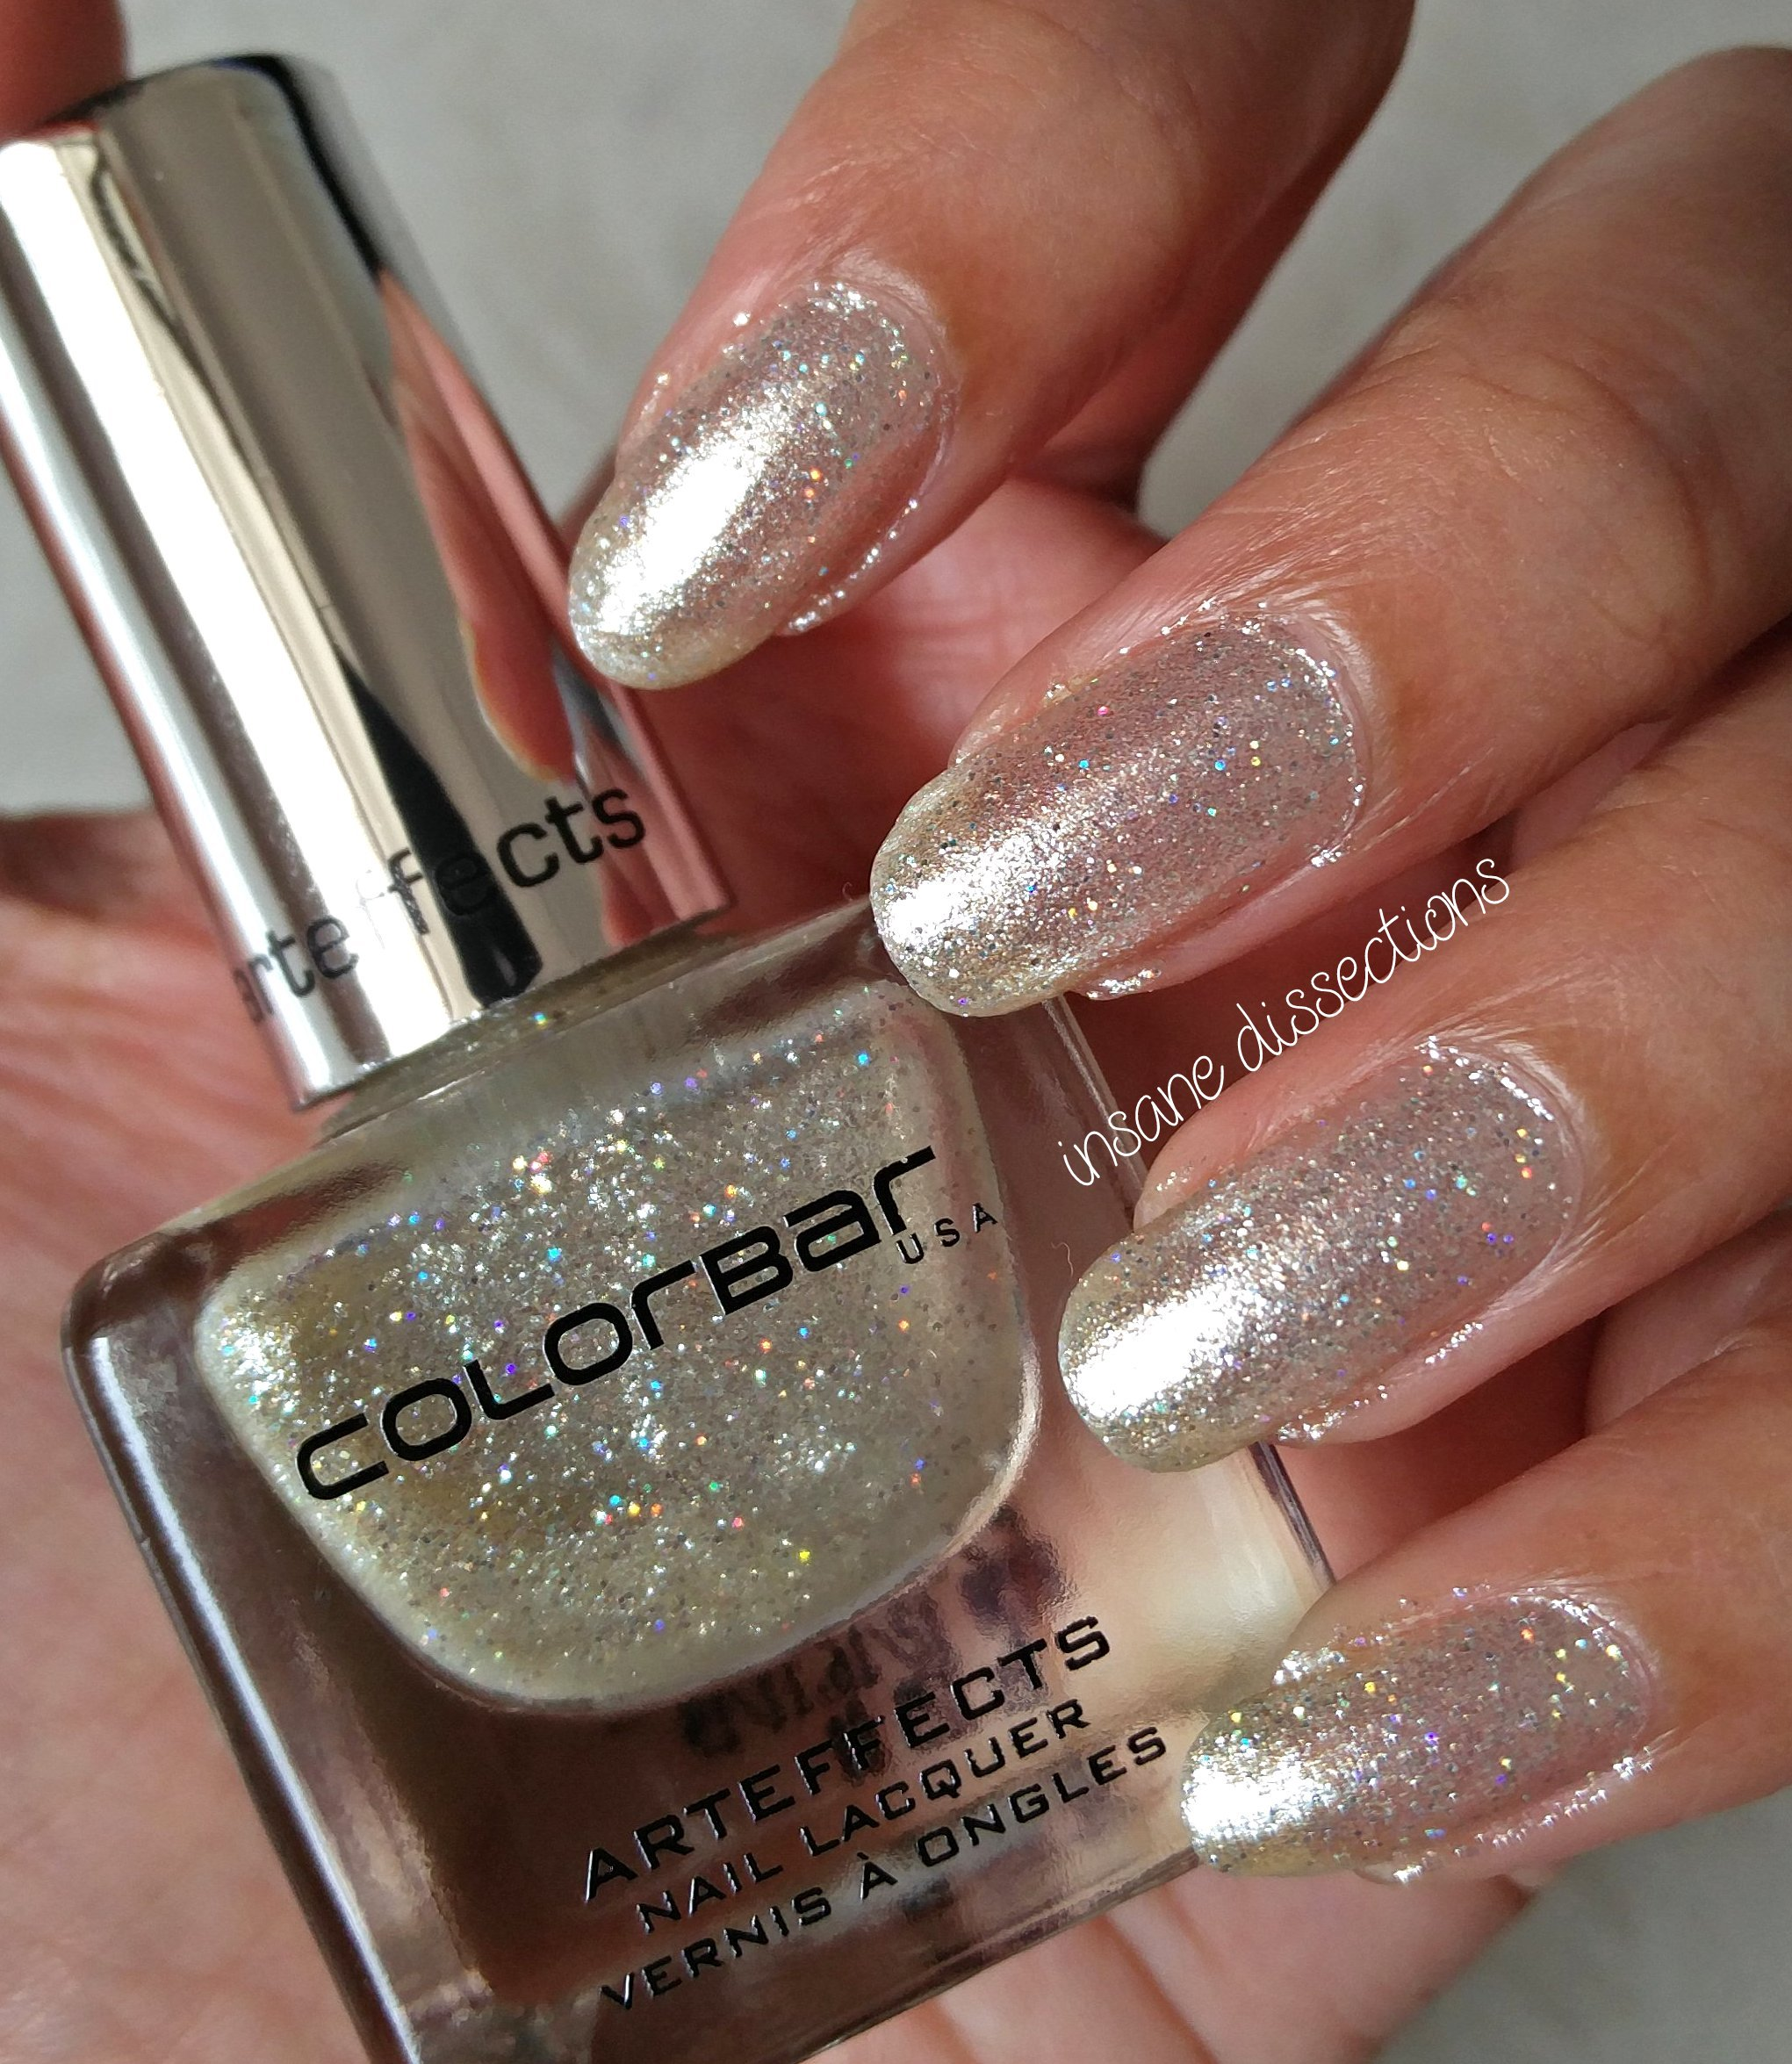 Laquer Nail Bar: Colorbar Arteffects Luxe Nail Lacquer